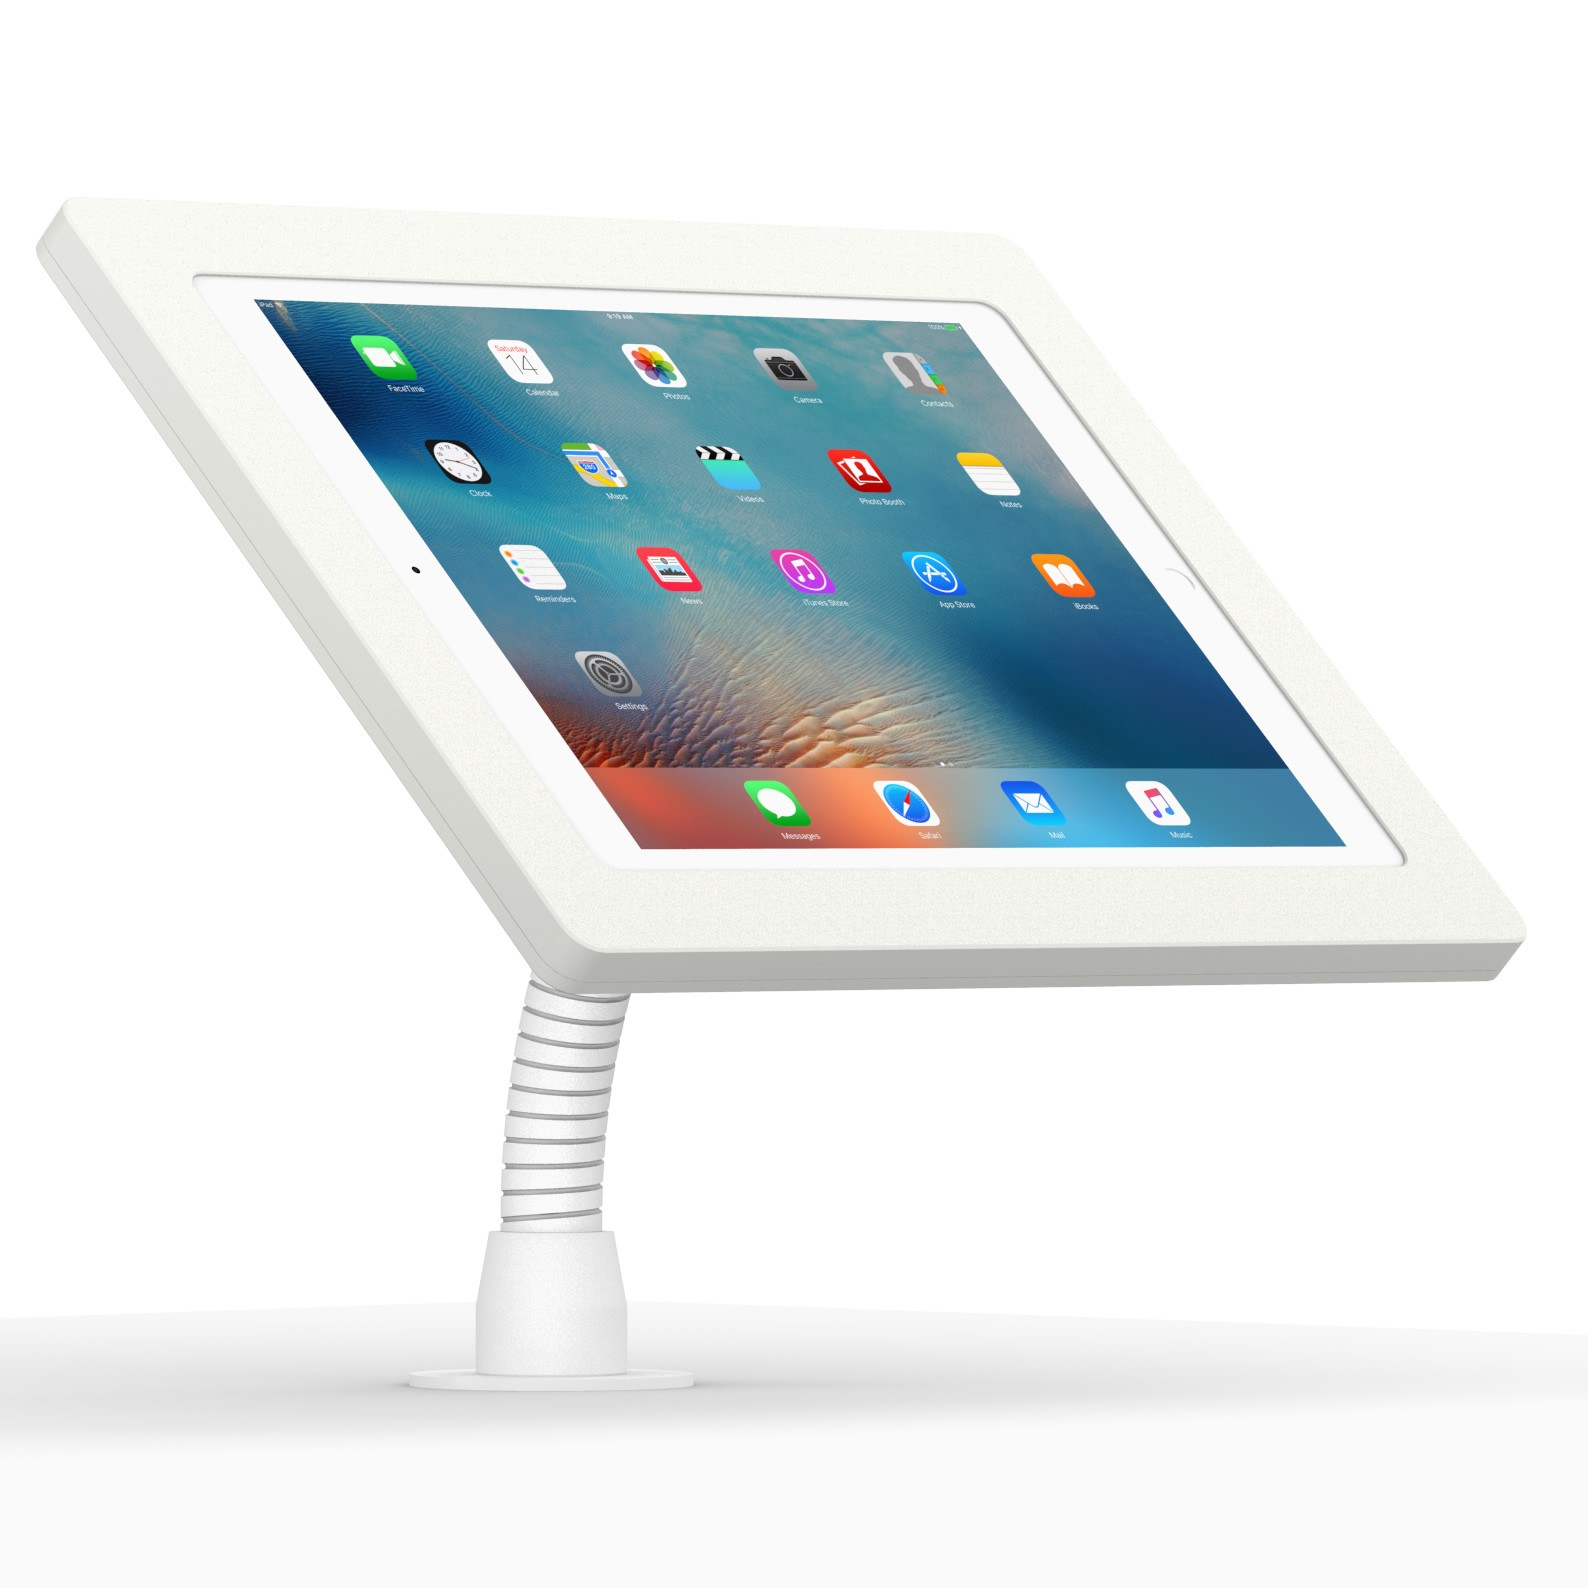 12 9 Inch Ipad Pro White Enclosure W Flexible Desk Wall